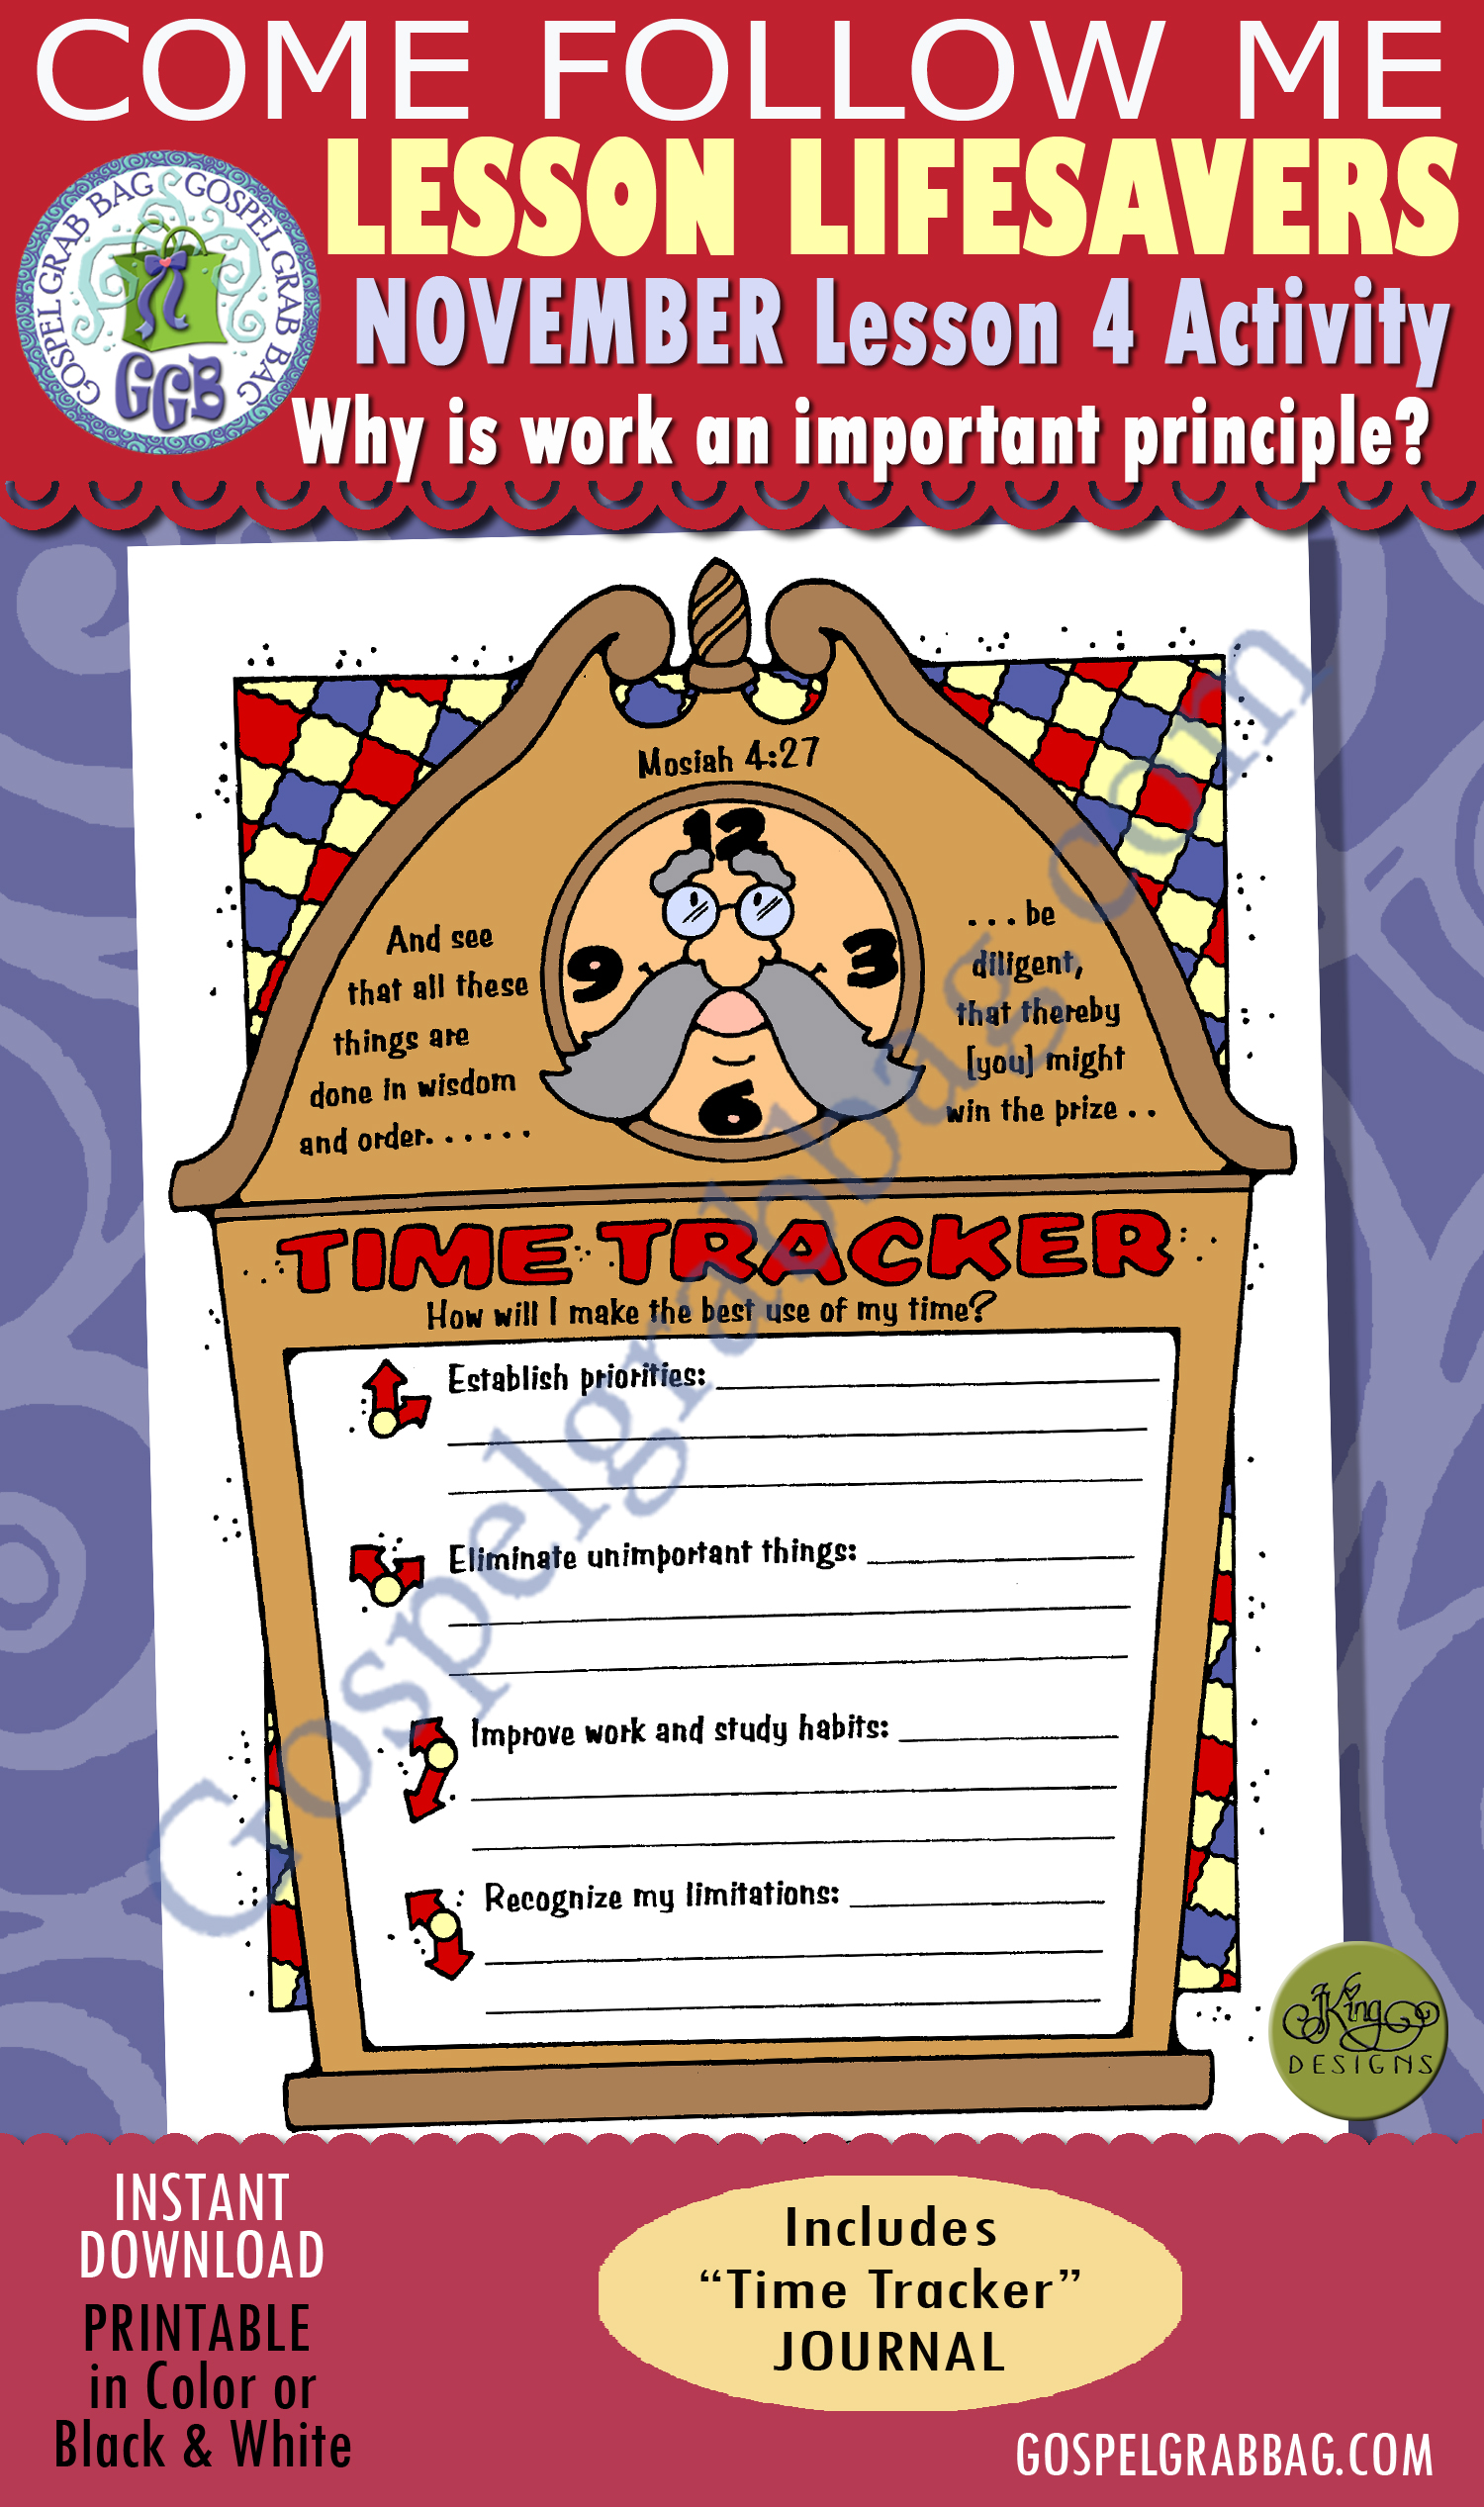 Work - Time Management: LDS Lesson Activity: Time Tracker